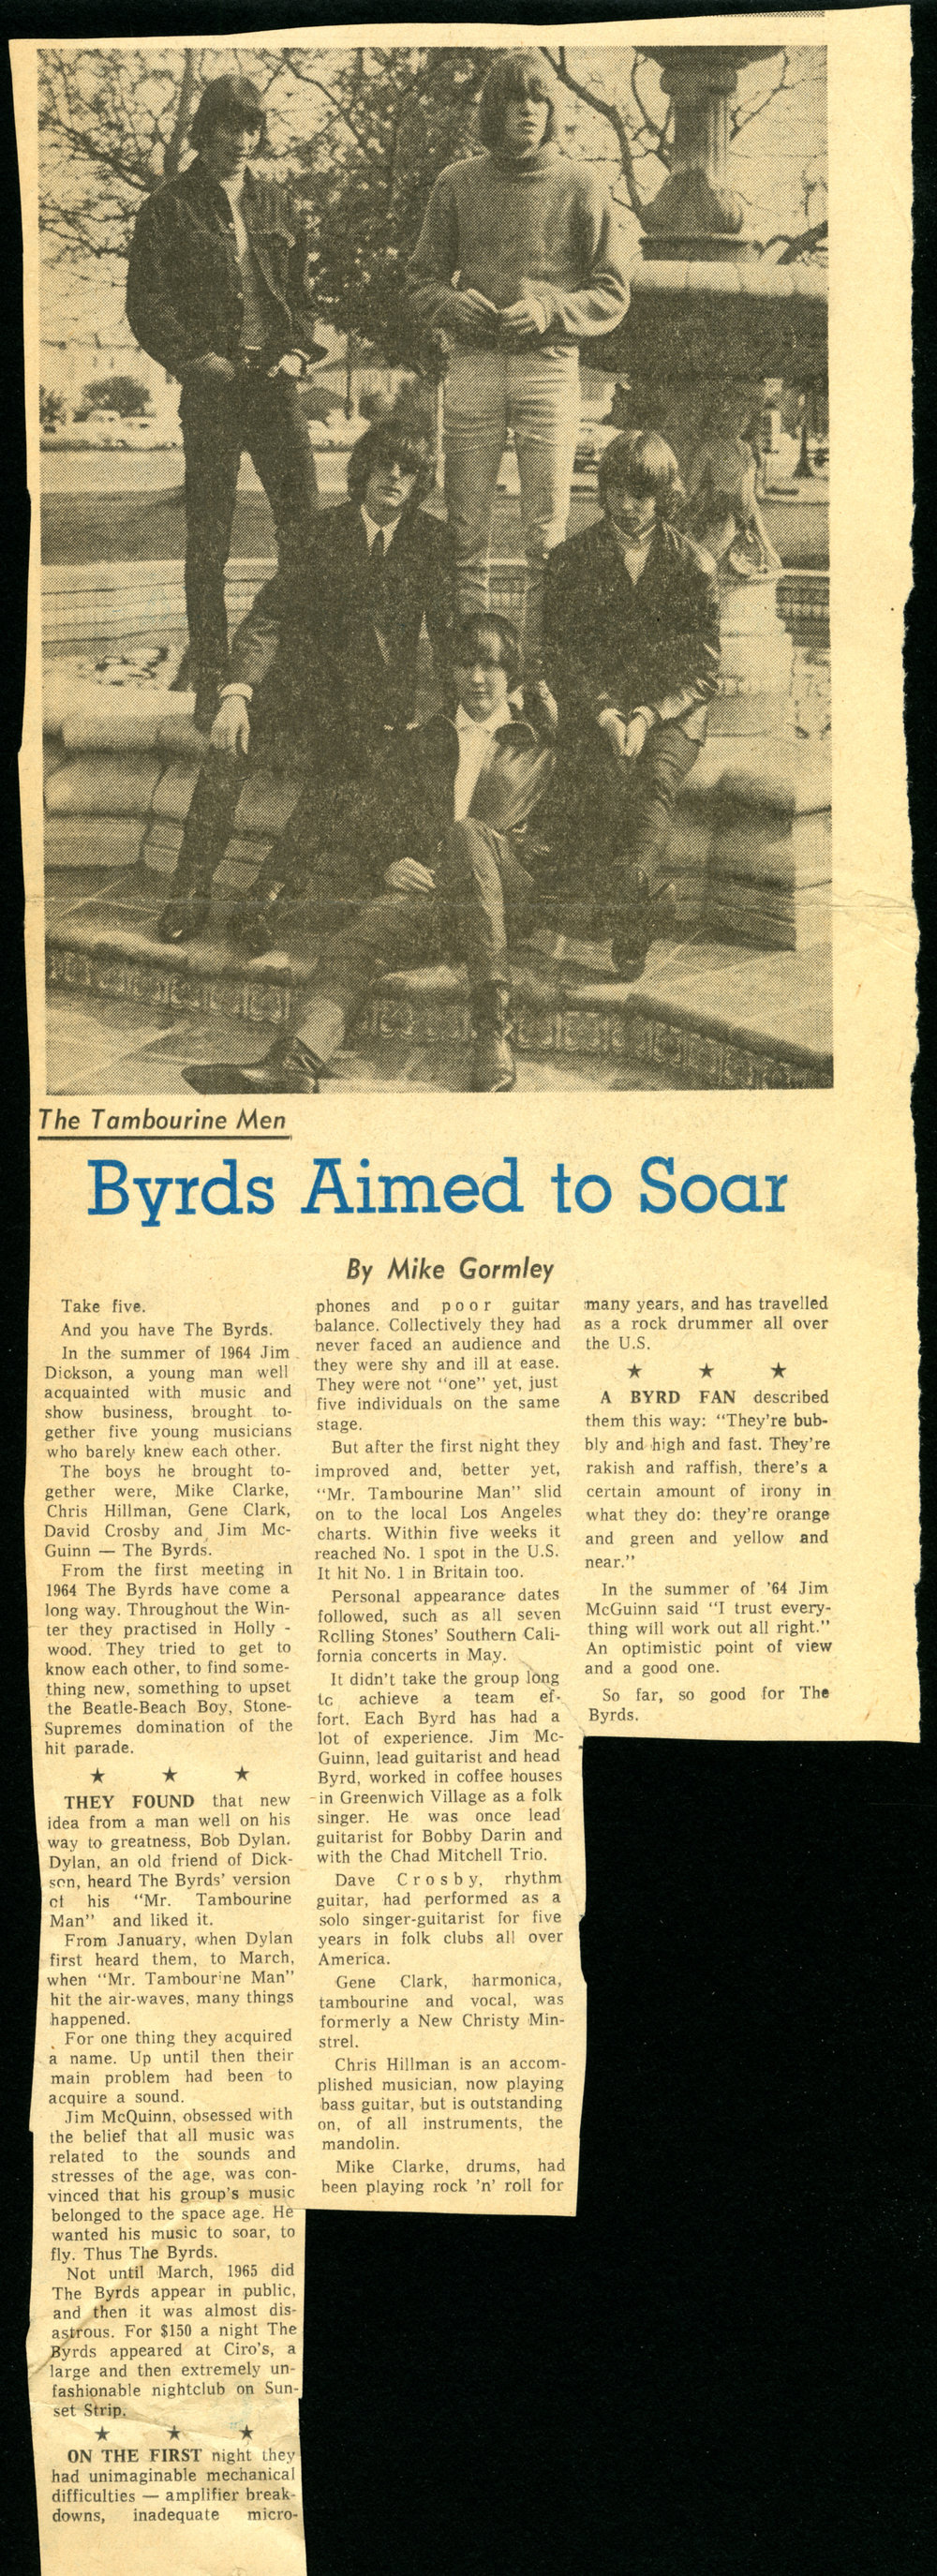 -Story on the Byrds by Mike Gormley from Ottawa Journal